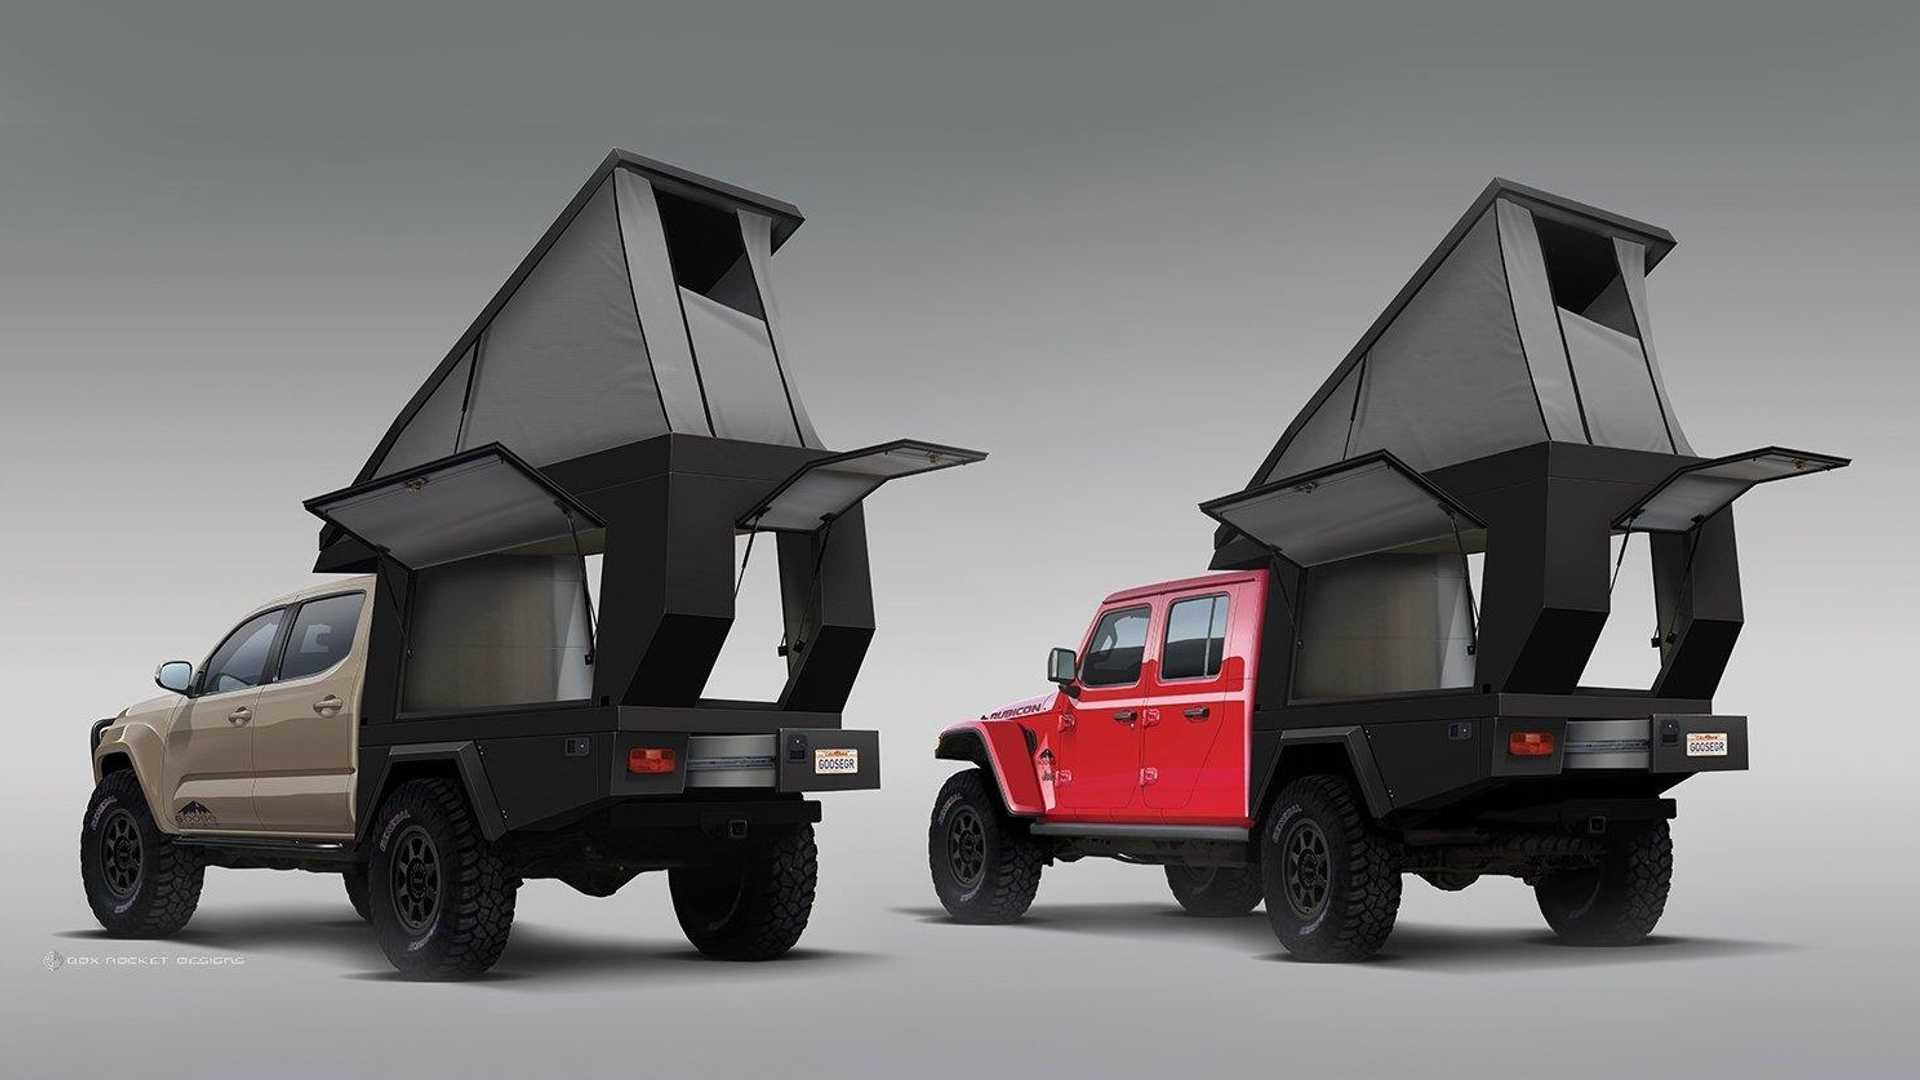 Fiftyten Turns The Bed Of Your Truck Into The Ultimate Camper